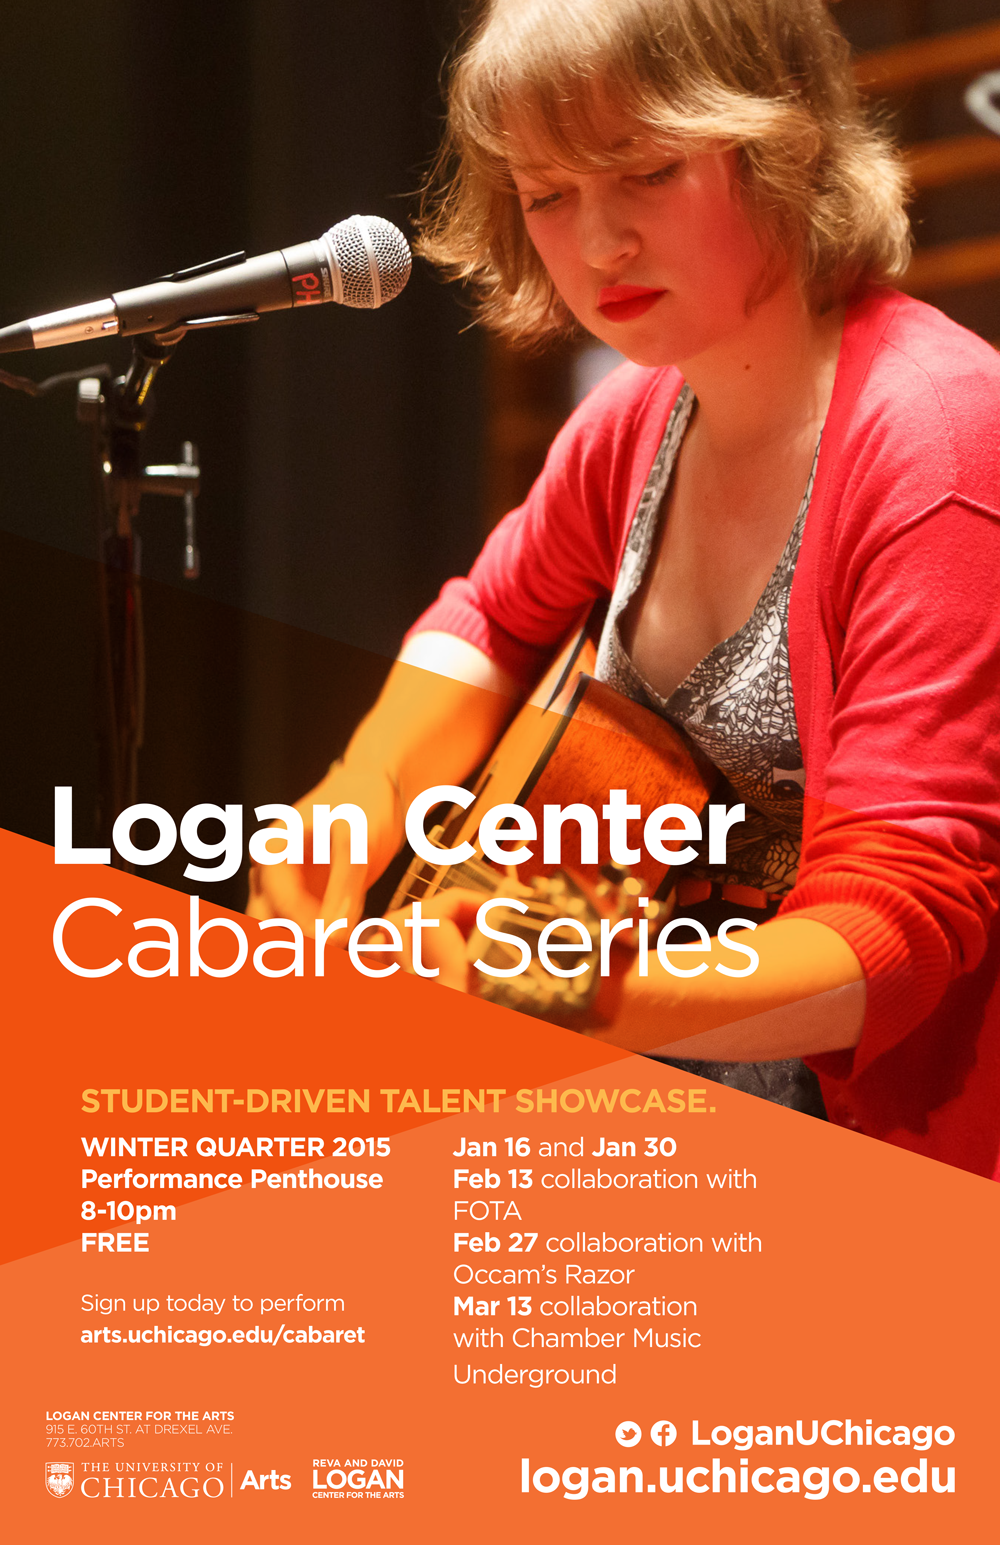 cabaret-poster-winter15-11x17.png